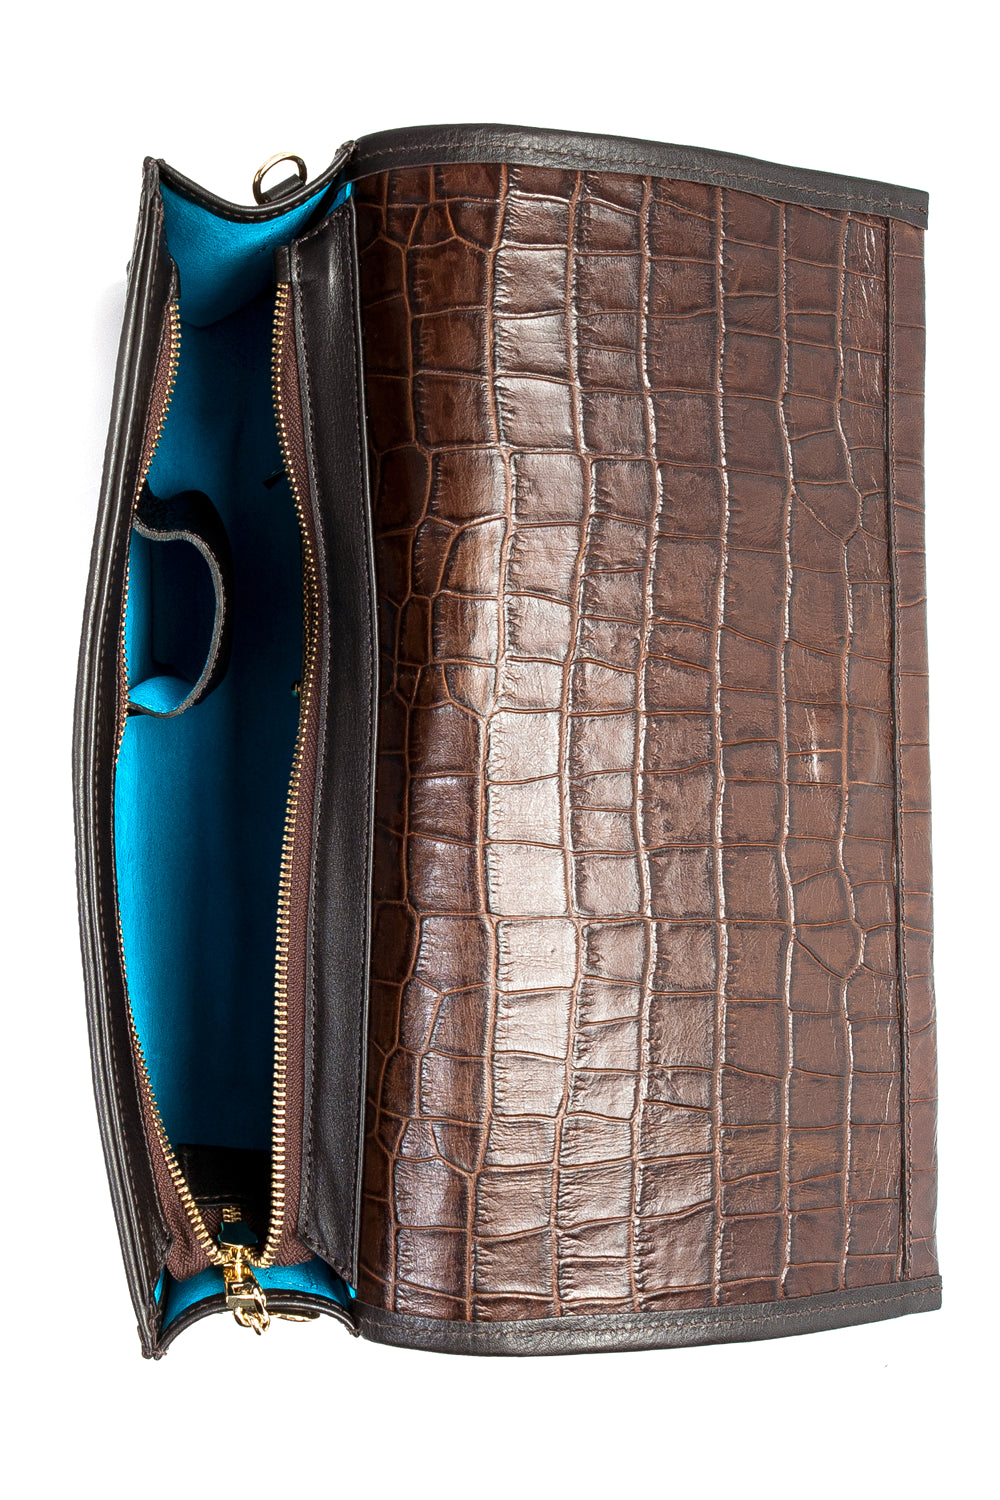 Cocoa Brown, Croc-Effect Leather 'Cara' Envelope Clutch | Mel Boteri | Interior View